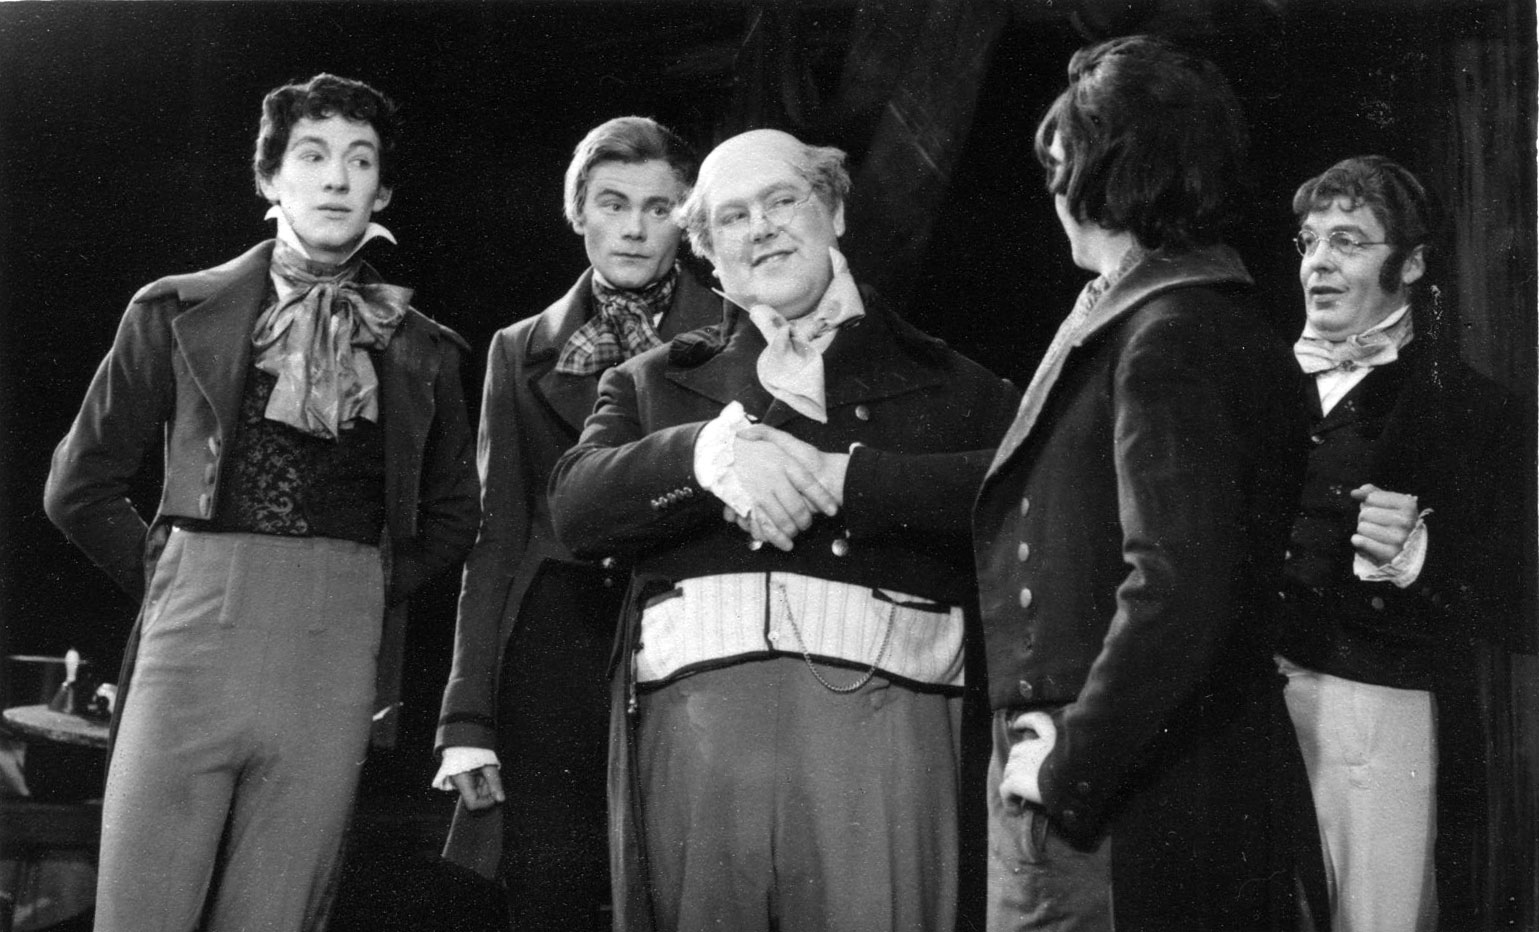 L to R: Snodgrass (Ian McKellen), Winkle (Peter French), Pickwick (Patrick Newell), Jingle (Bernard Kilby), Tupman (Alan Haywood)